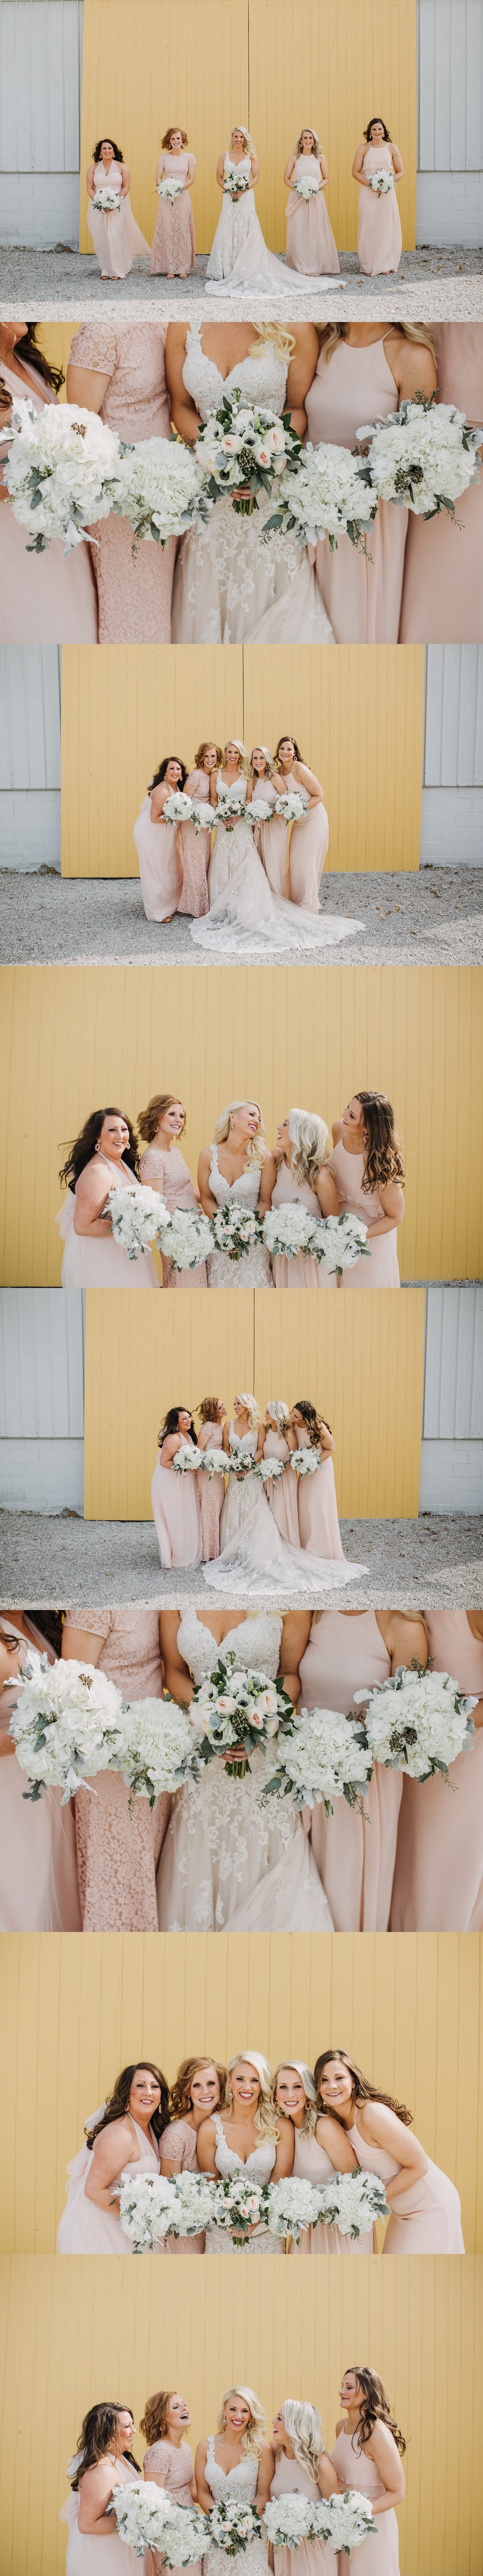 Jorgensen Farms Wedding